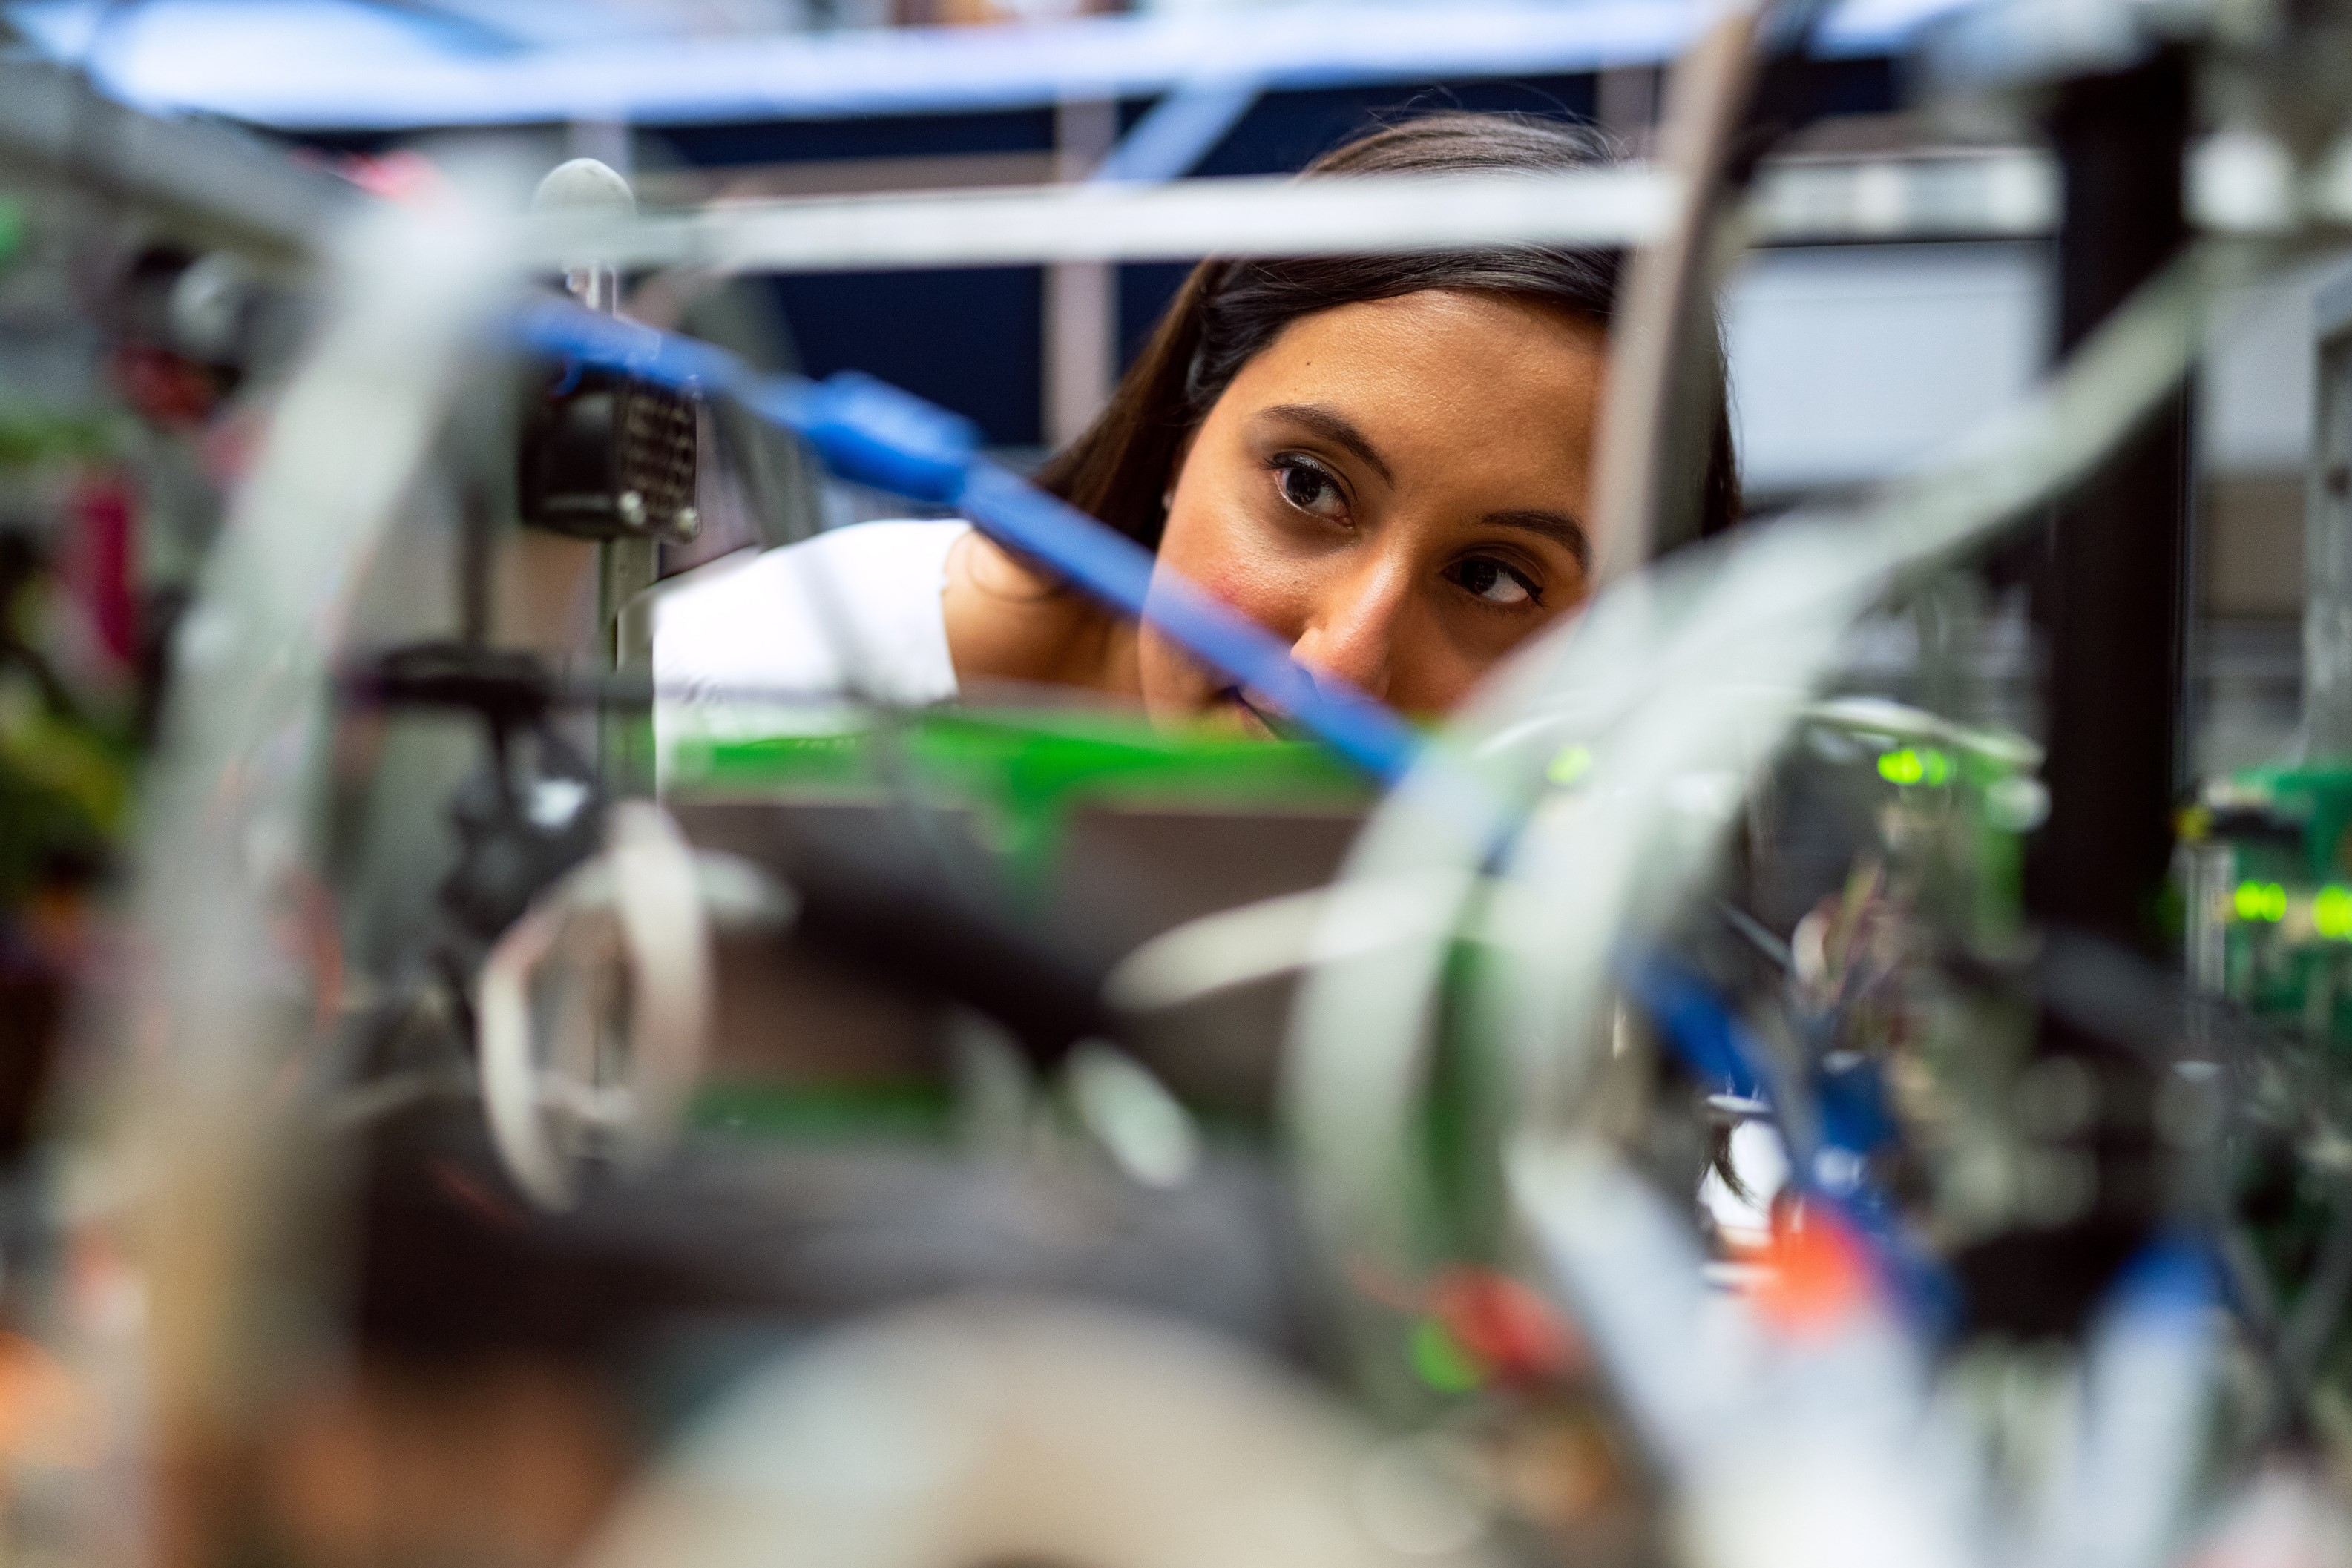 Advanced computing in pharma: 3 reasons why quantum computing could disrupt the pharma R&D by Alcimed